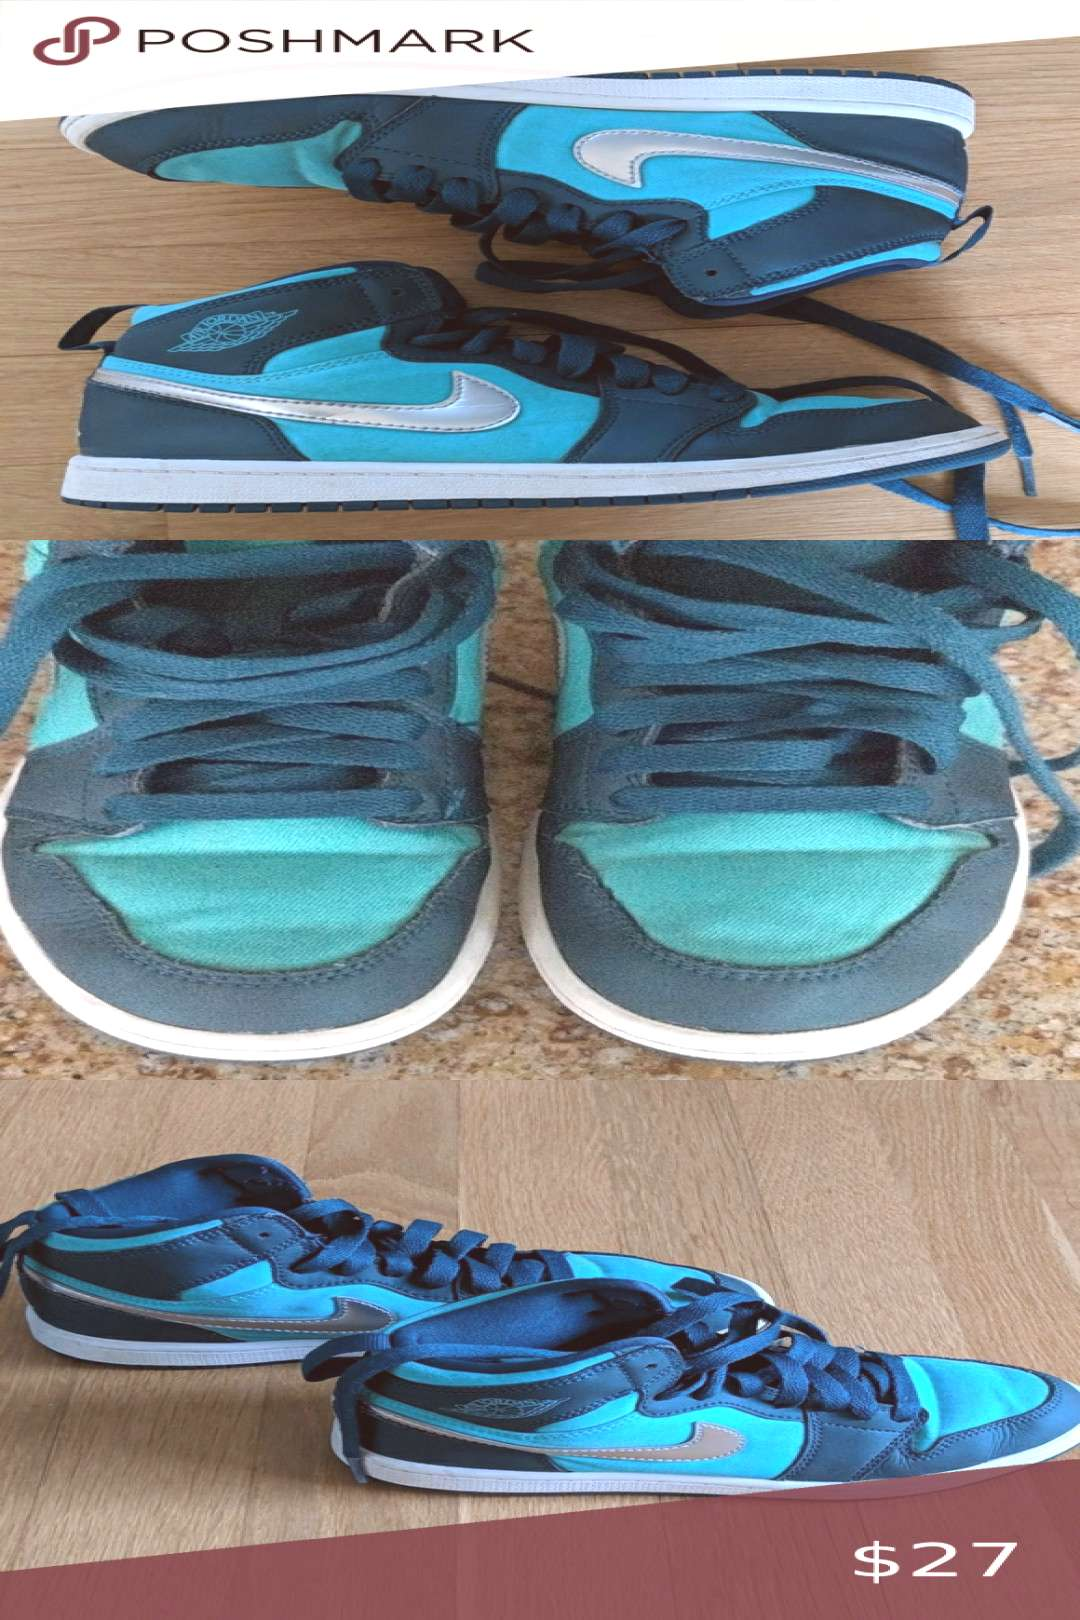 Nike Schuhe 80% RABATT!gt Nike Retro Hyper Jade High Tops. Nike Retro Hyper Jade High ... - Nike Re